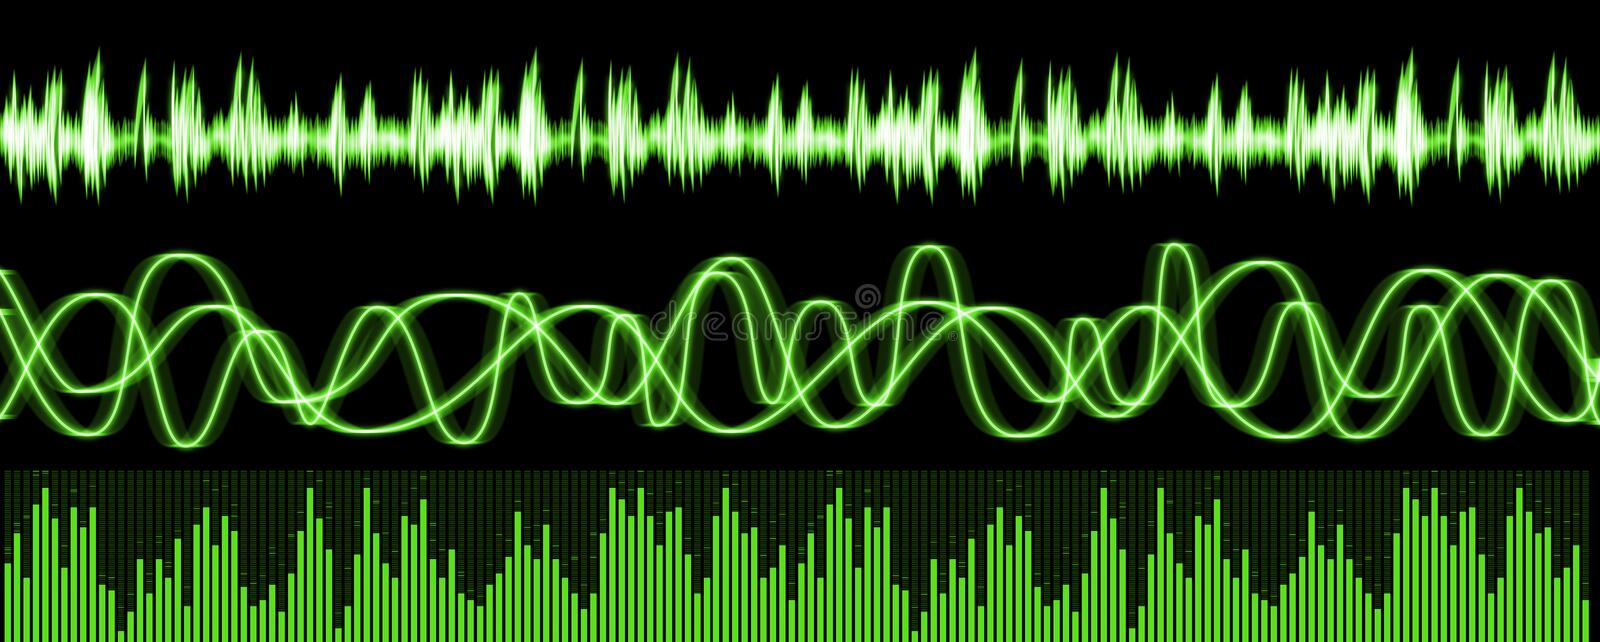 Sound Waves Equalizer. Computer generated sound waves and equalizer as seen in various audio editing application. Created in Photoshop CS2 vector illustration